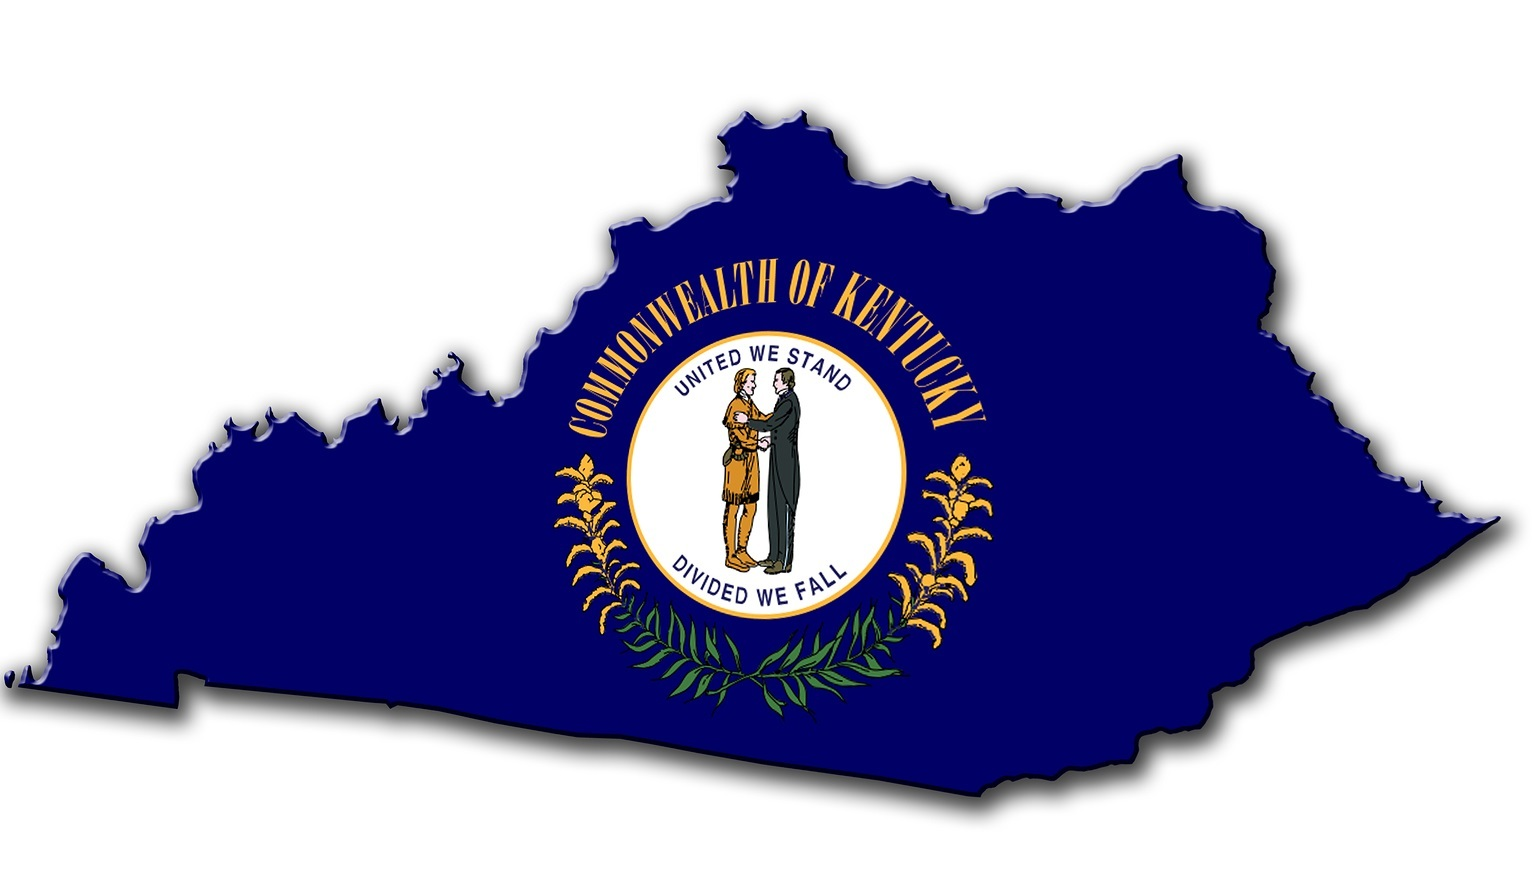 Illustration of Kentucky created with a high attention to detail.